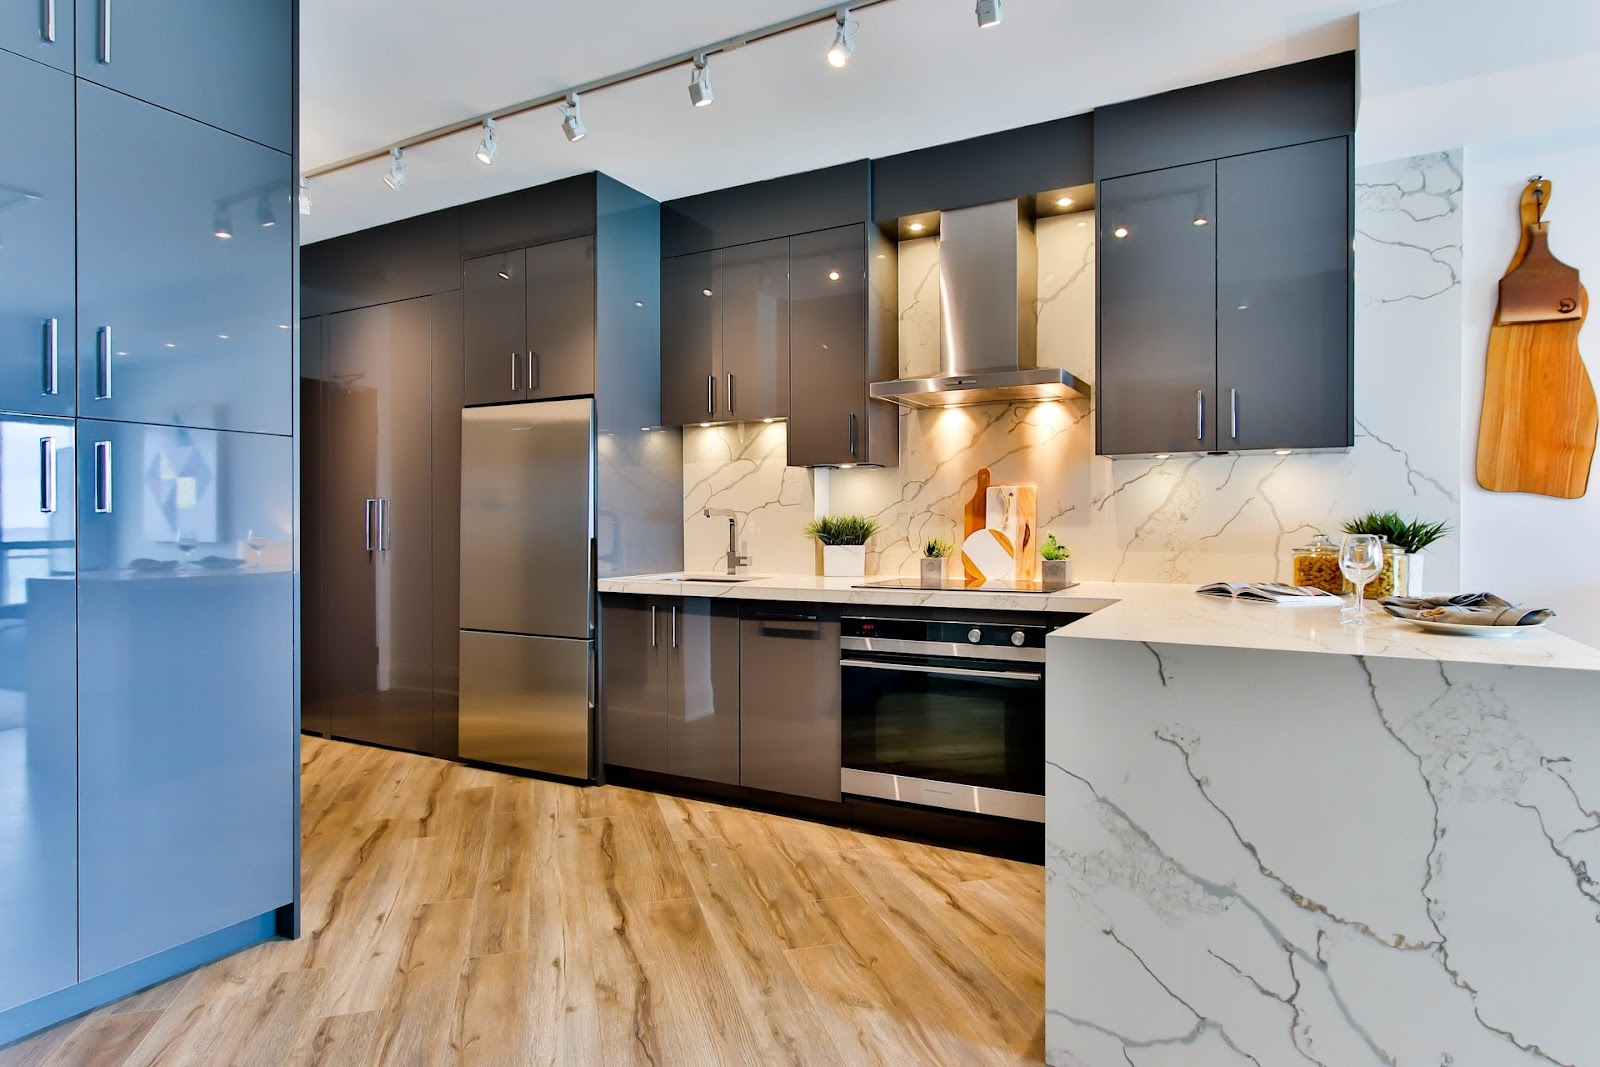 Sleek silver cabinets equipped with stylish handles representing the importance of choosing the perfect kitchen cabinets